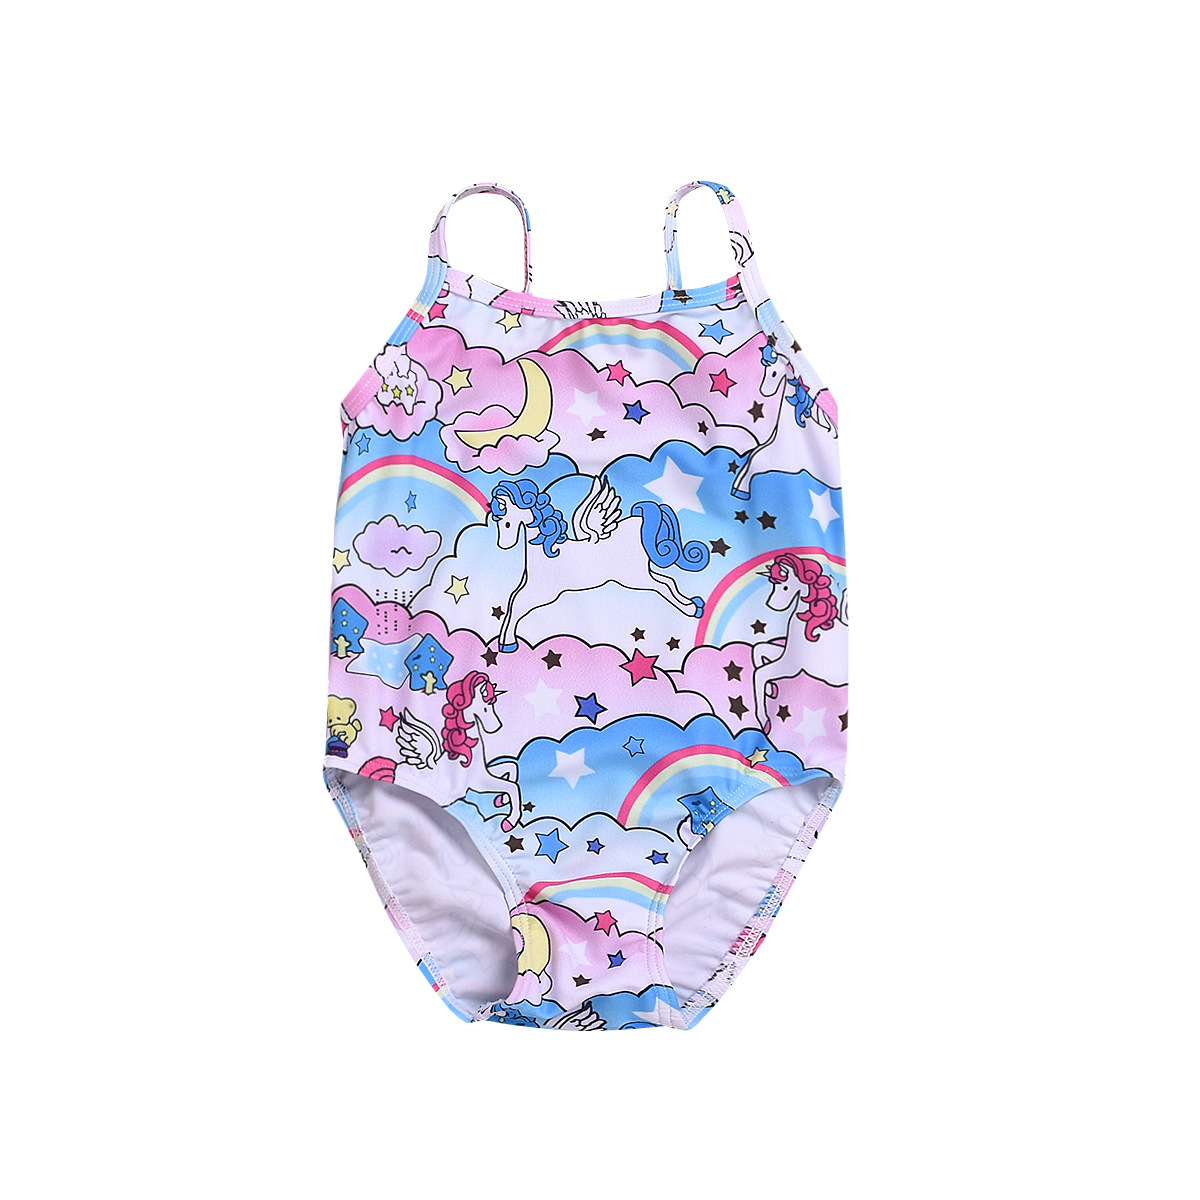 Childrenswear Summer KID'S Swimwear GIRL'S Swimsuit Camisole Cartoon Unicorn Bathing Suit